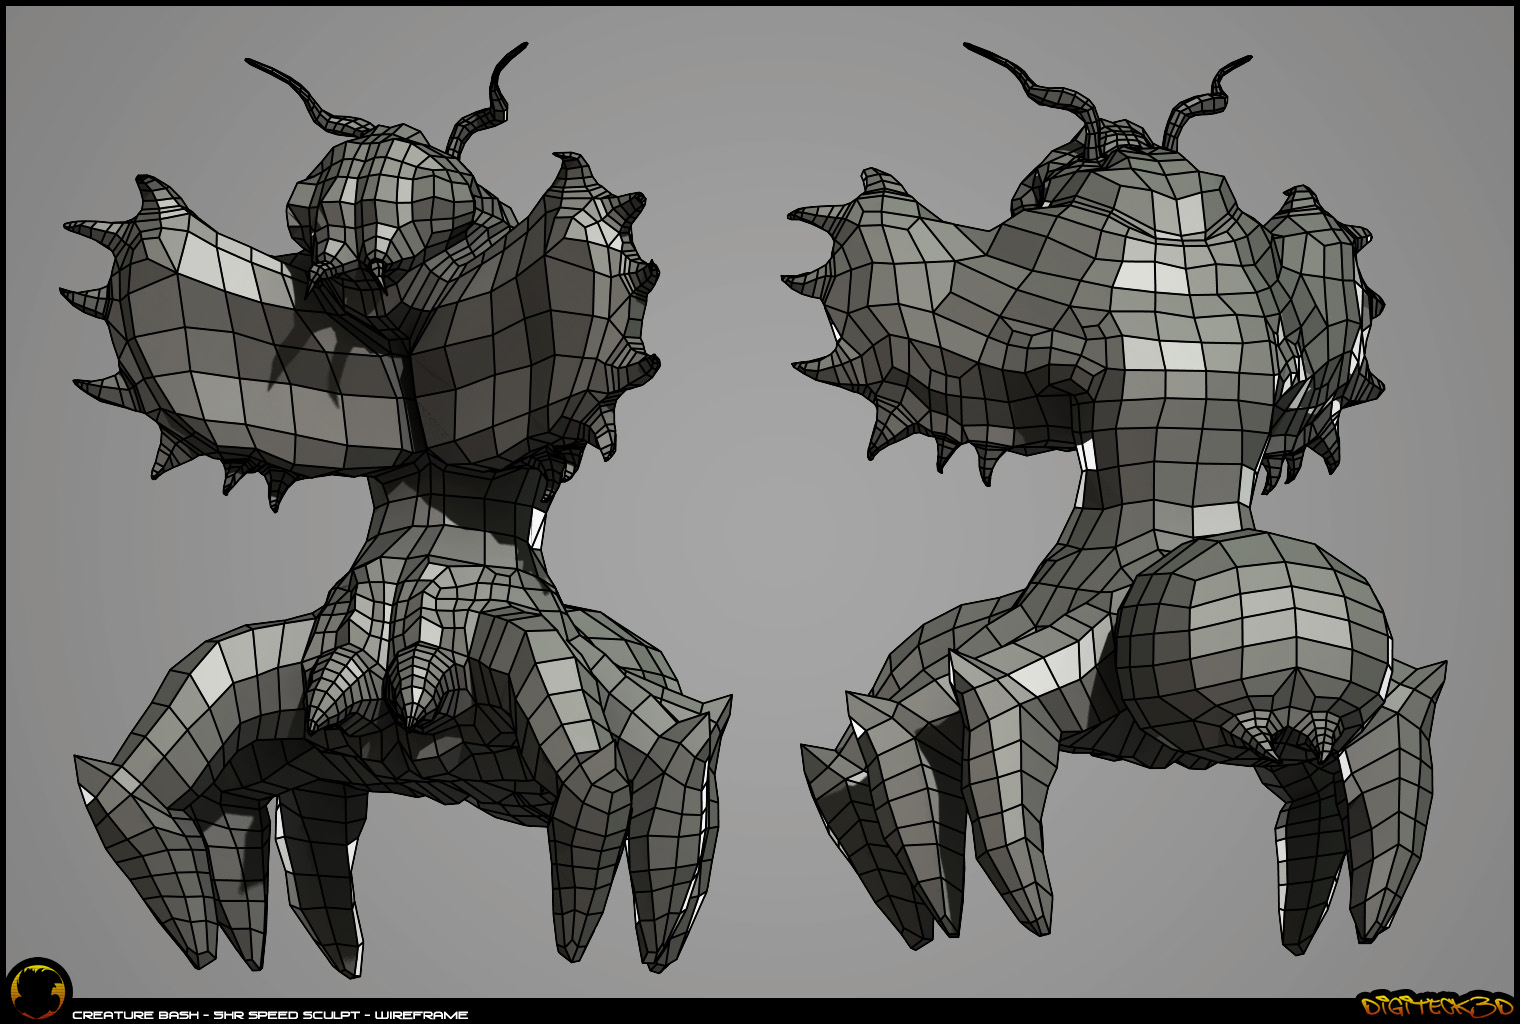 Creature 00 | Wireframe